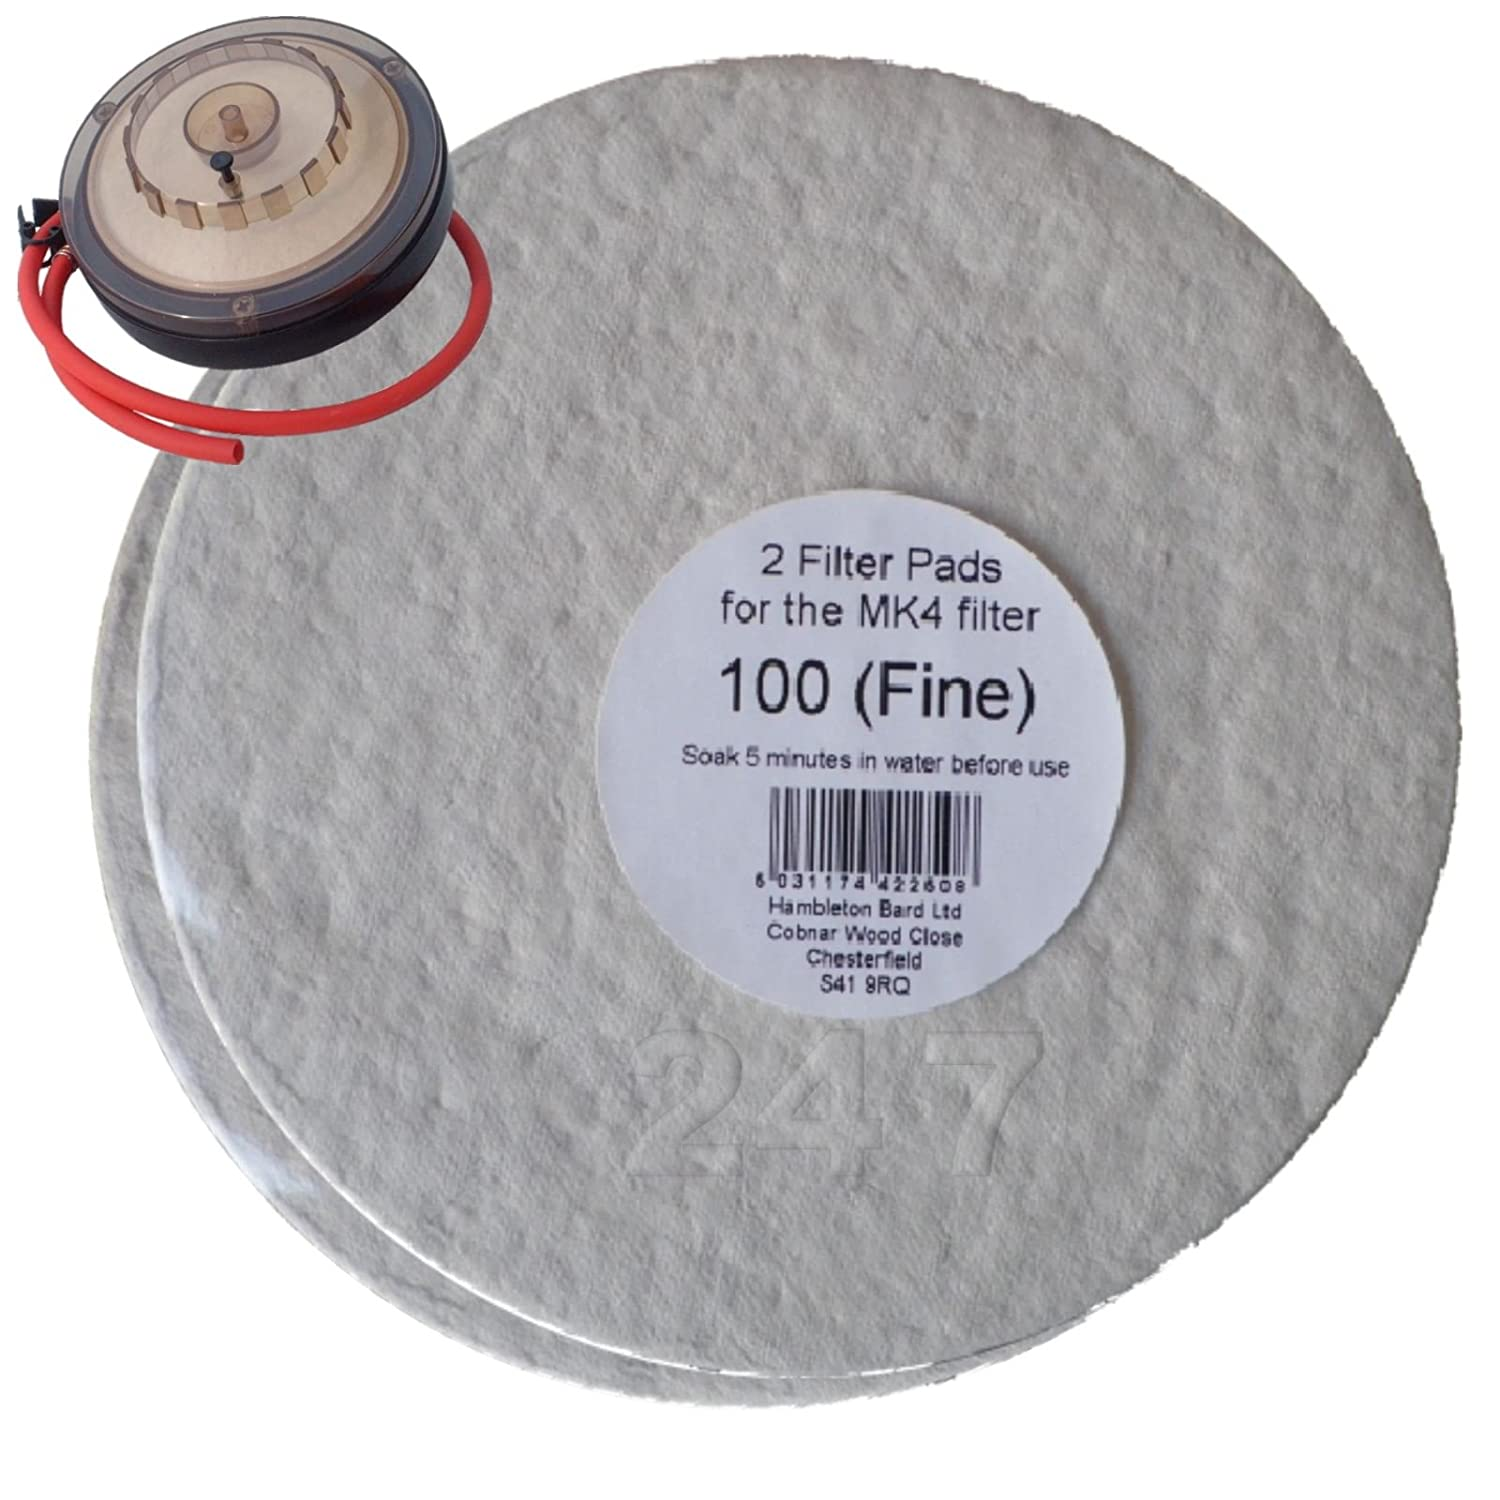 Filter Pads 100 Fine 2x Pack for the Better Brew MK4 Wine Filter Homebrew